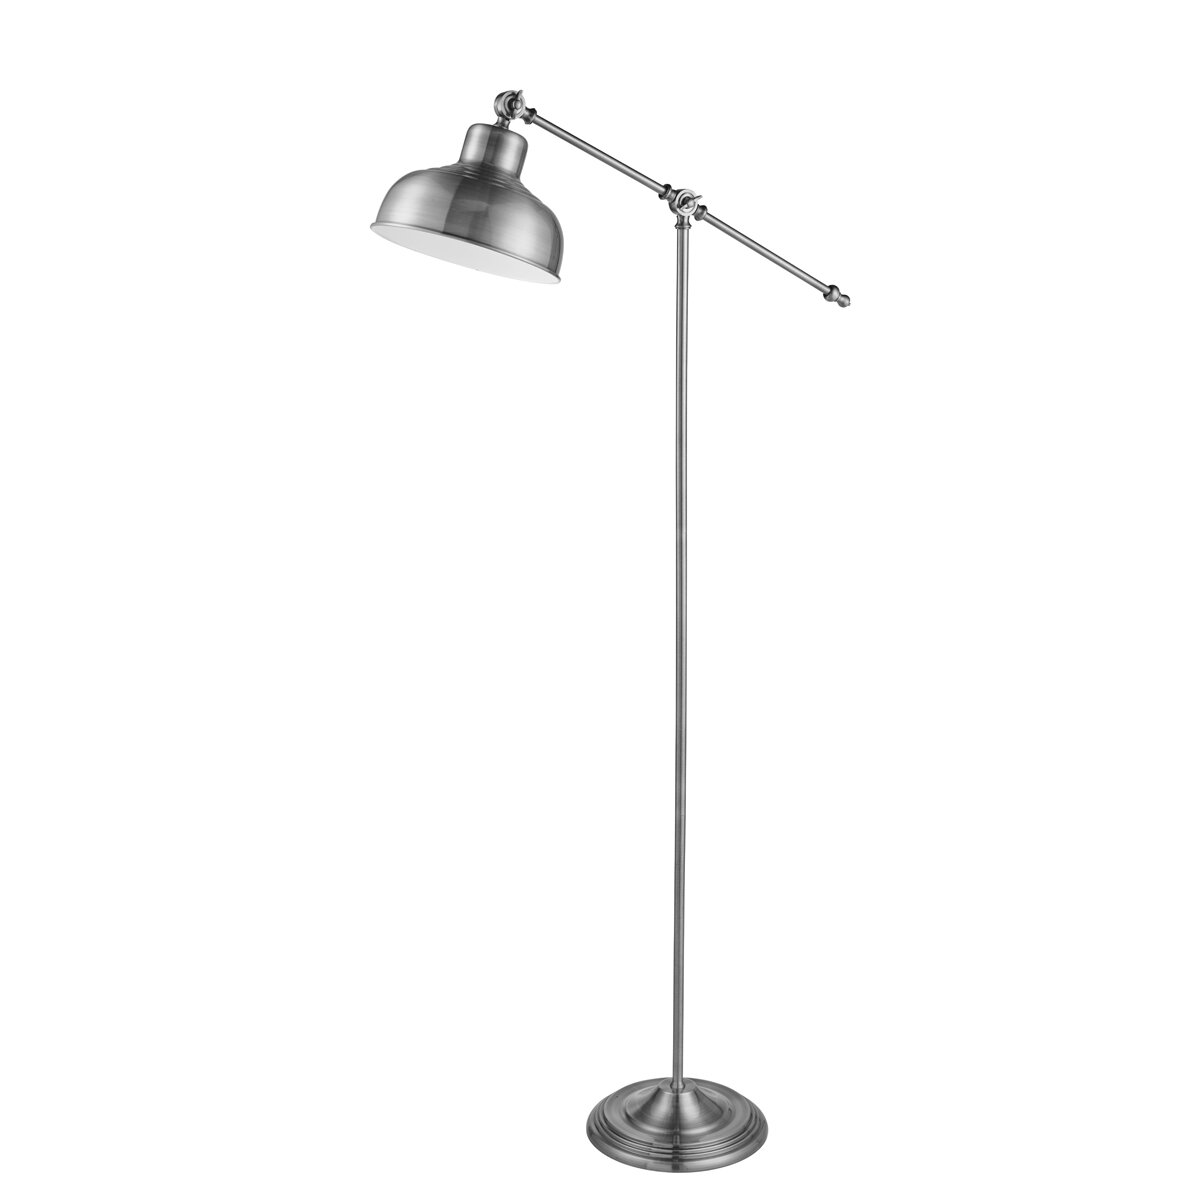 Searchlight Macbeth 167cm Arched Floor Lamp Reviews